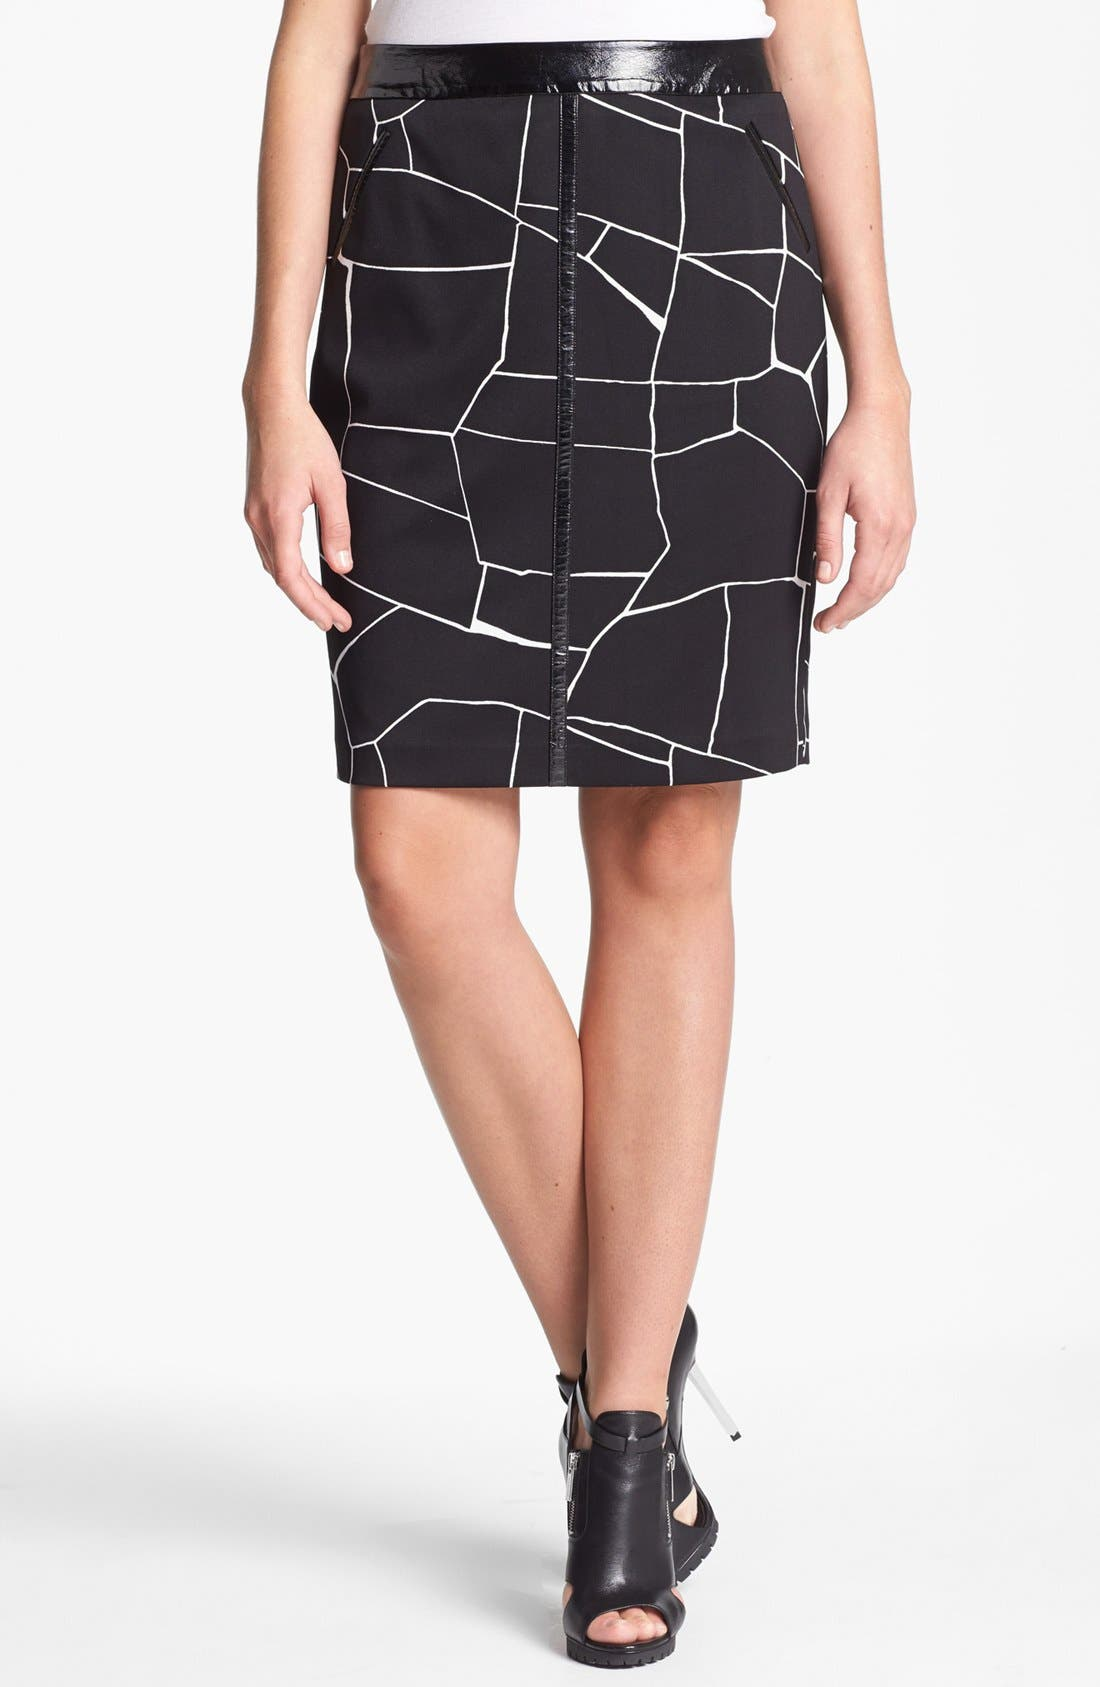 Alternate Image 1 Selected - Vince Camuto Faux Patent Leather Trim Print Pencil Skirt